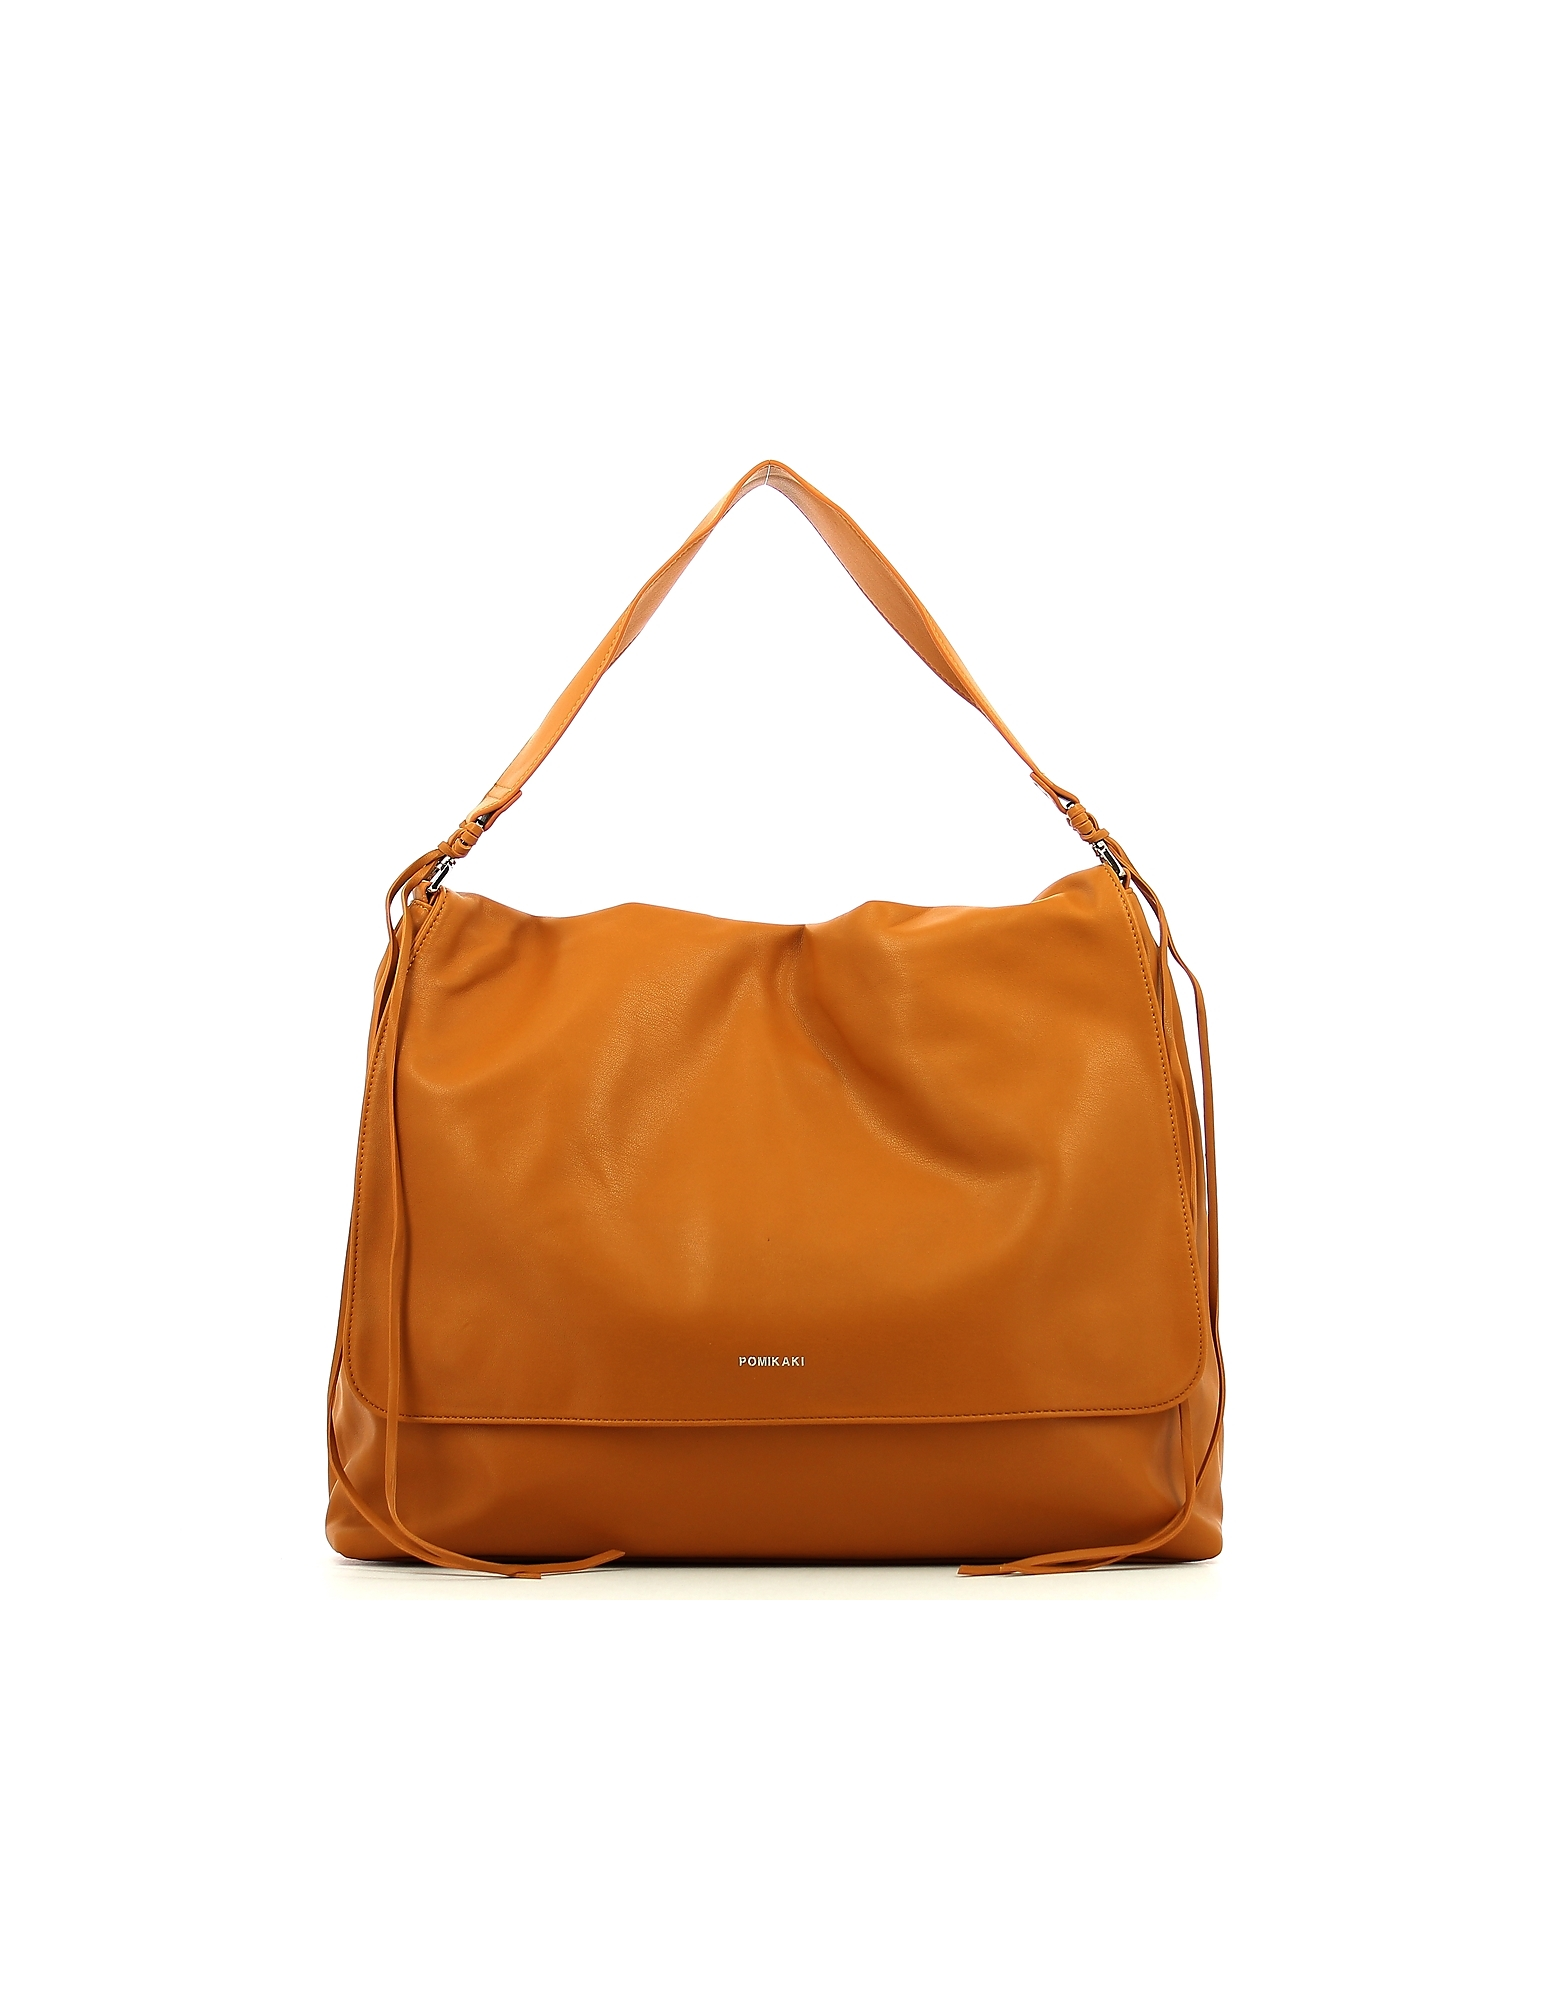 POMIKAKI 手袋, Women's Brown Bag